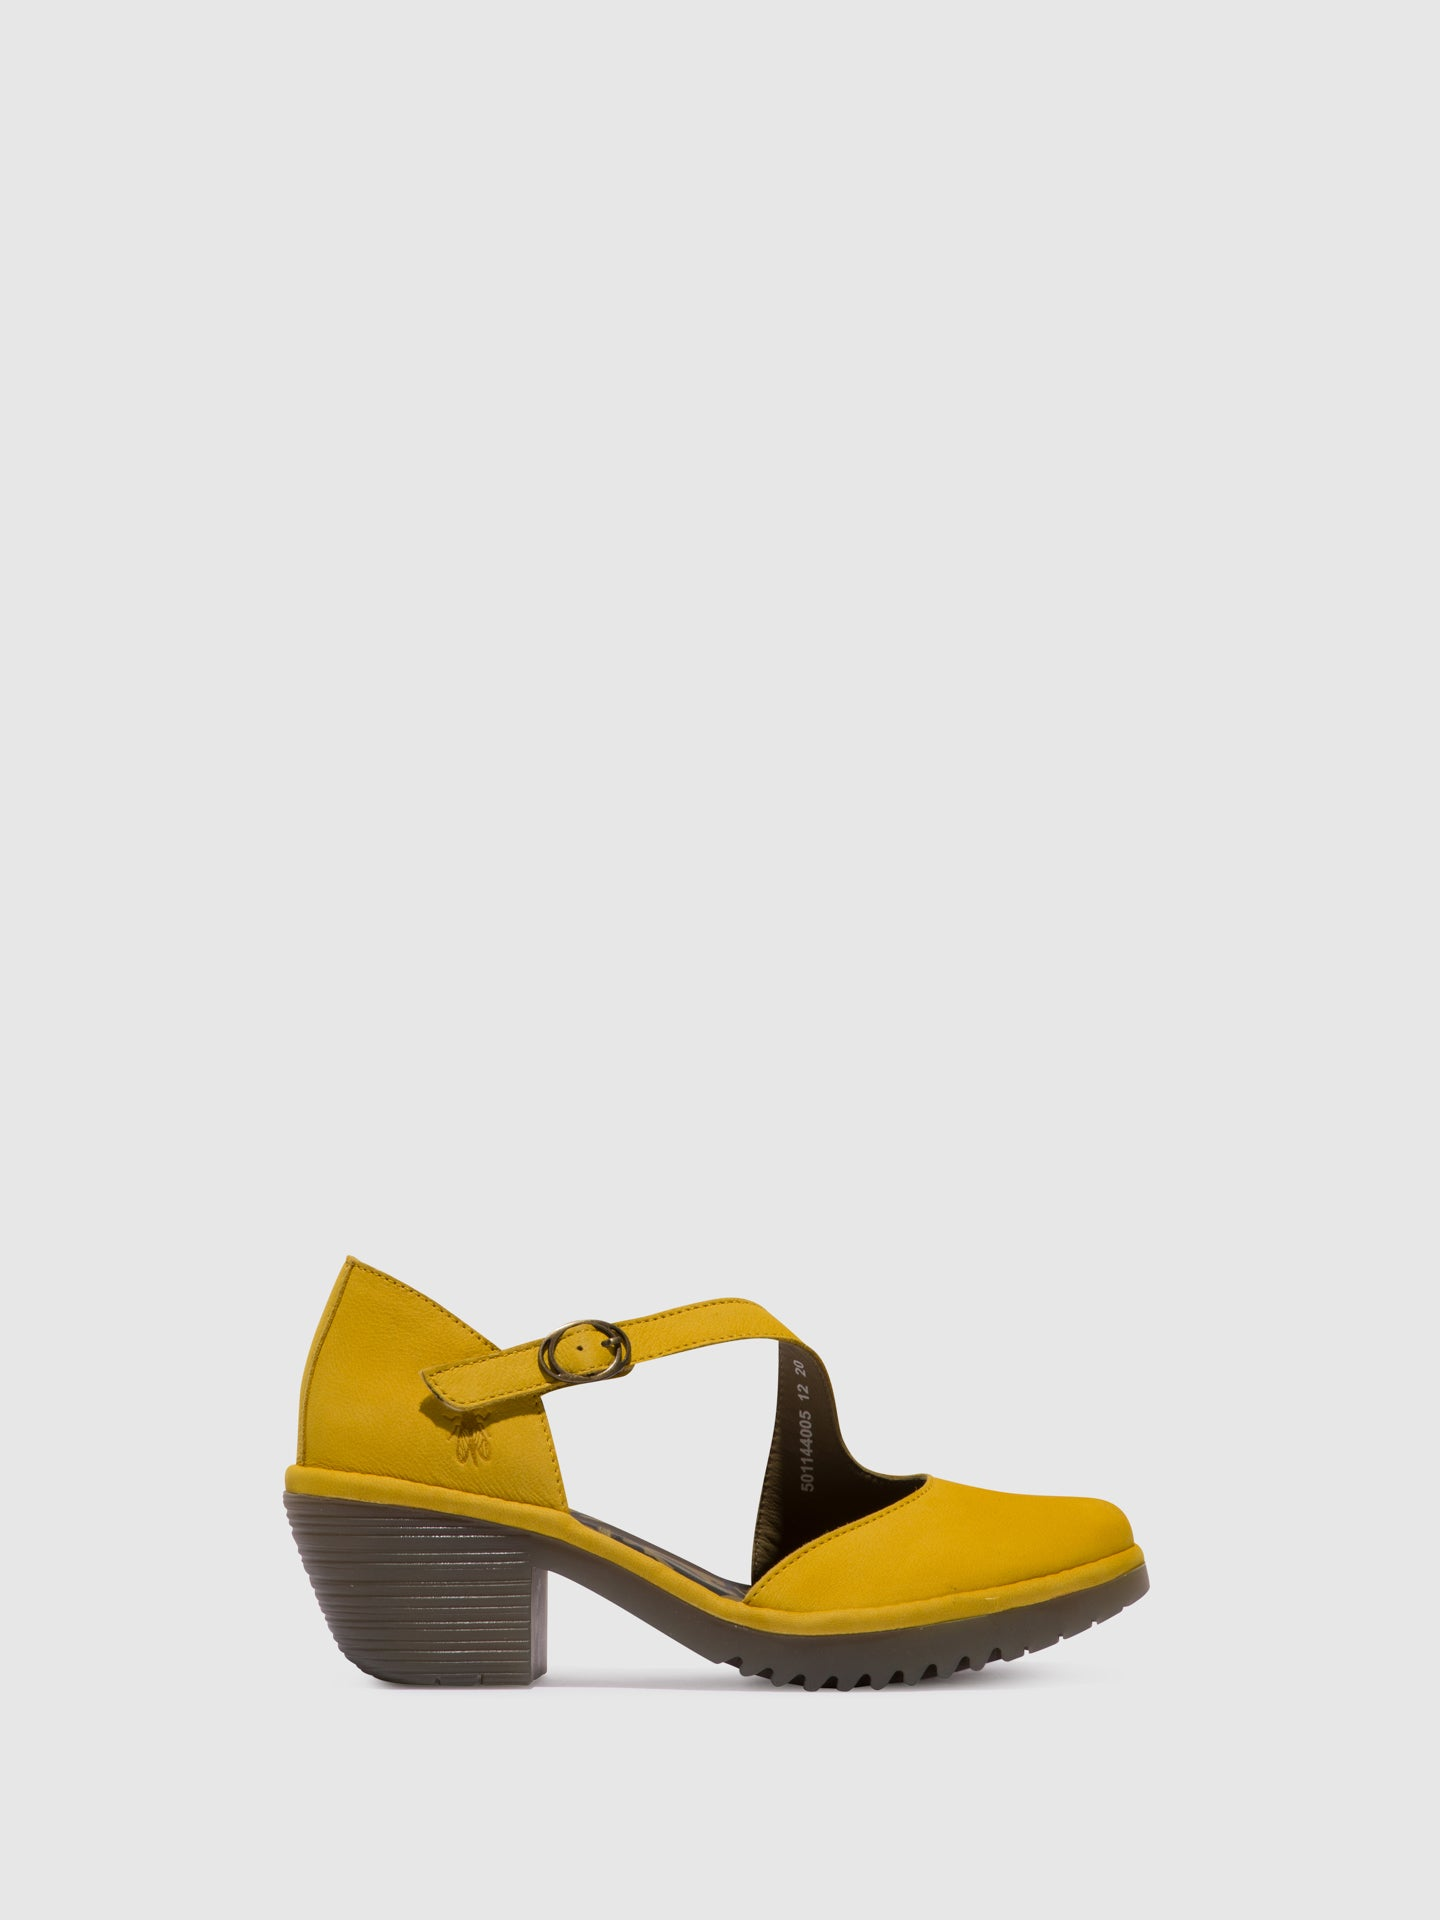 Fly London Yellow Velcro Sandals